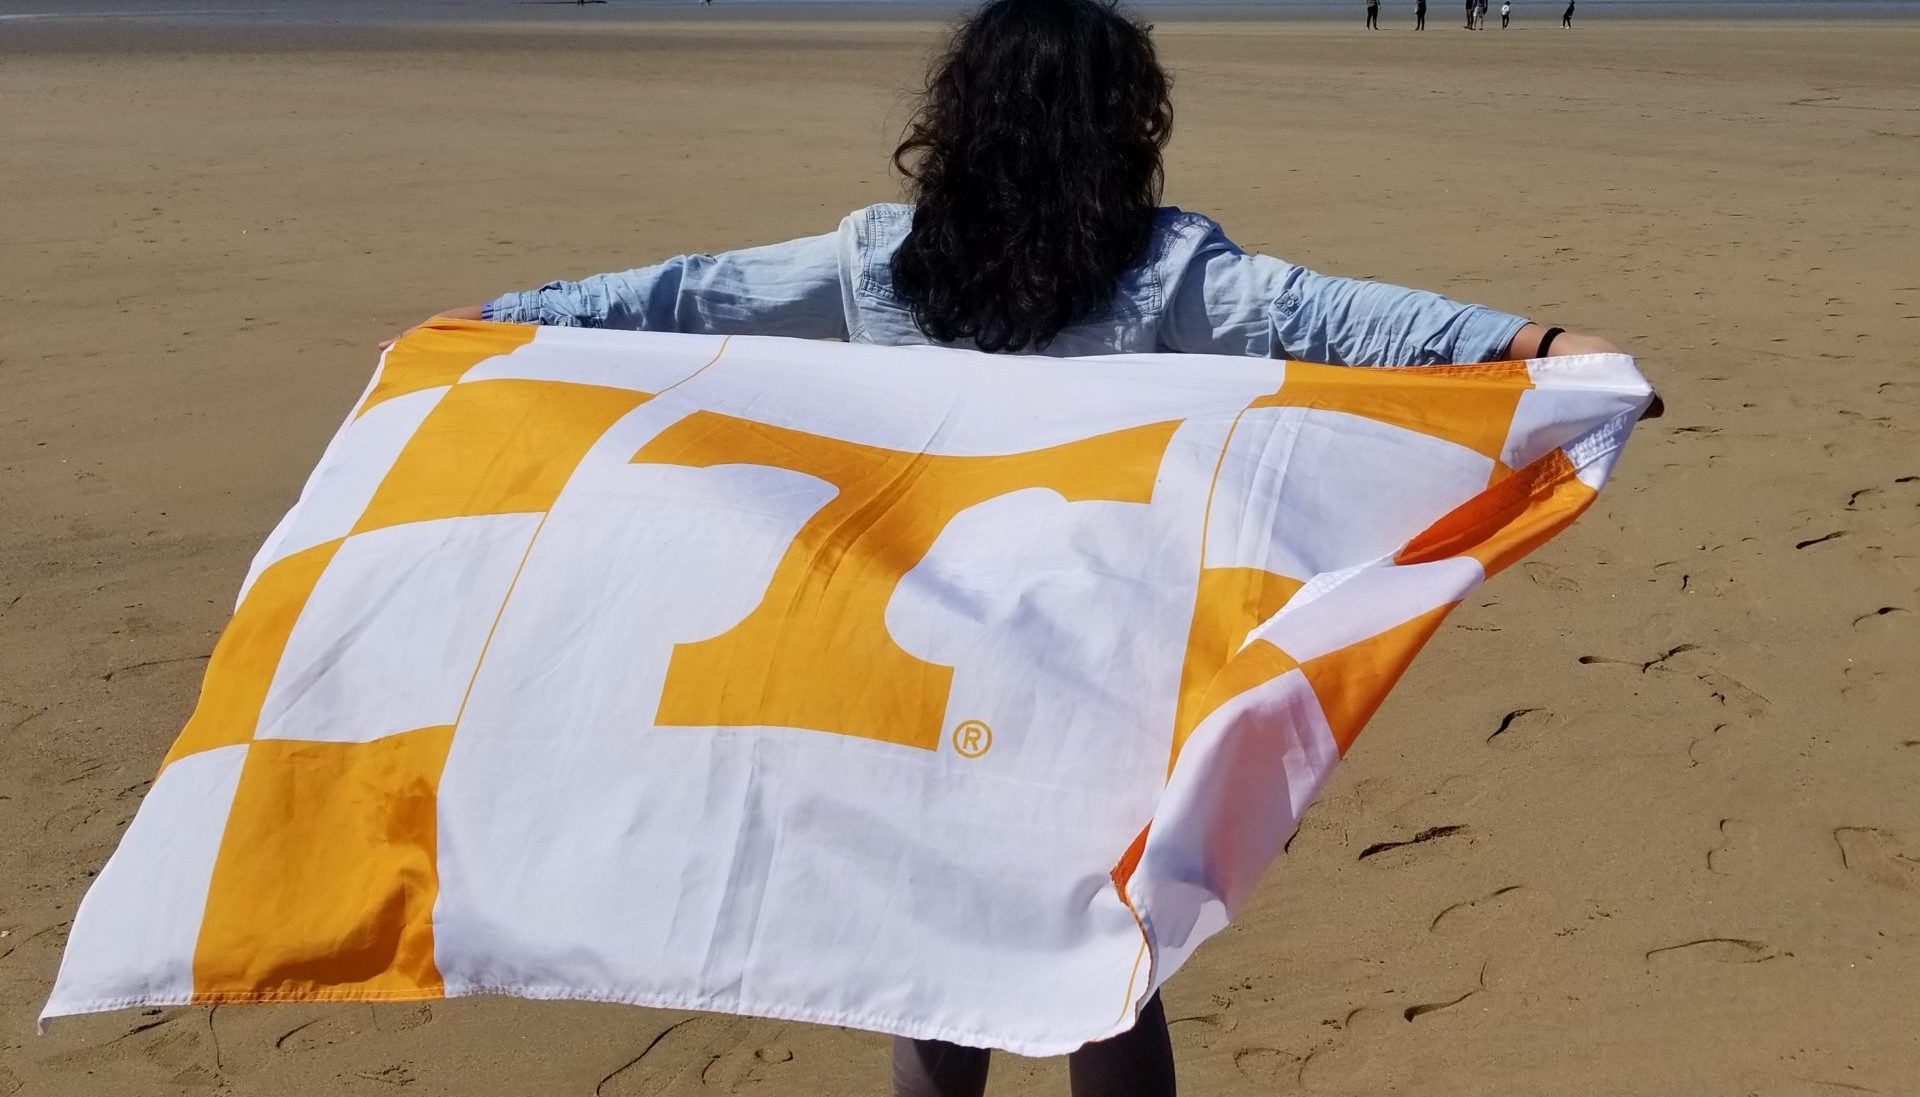 Female student with back to camera holding a University of Tennessee flag